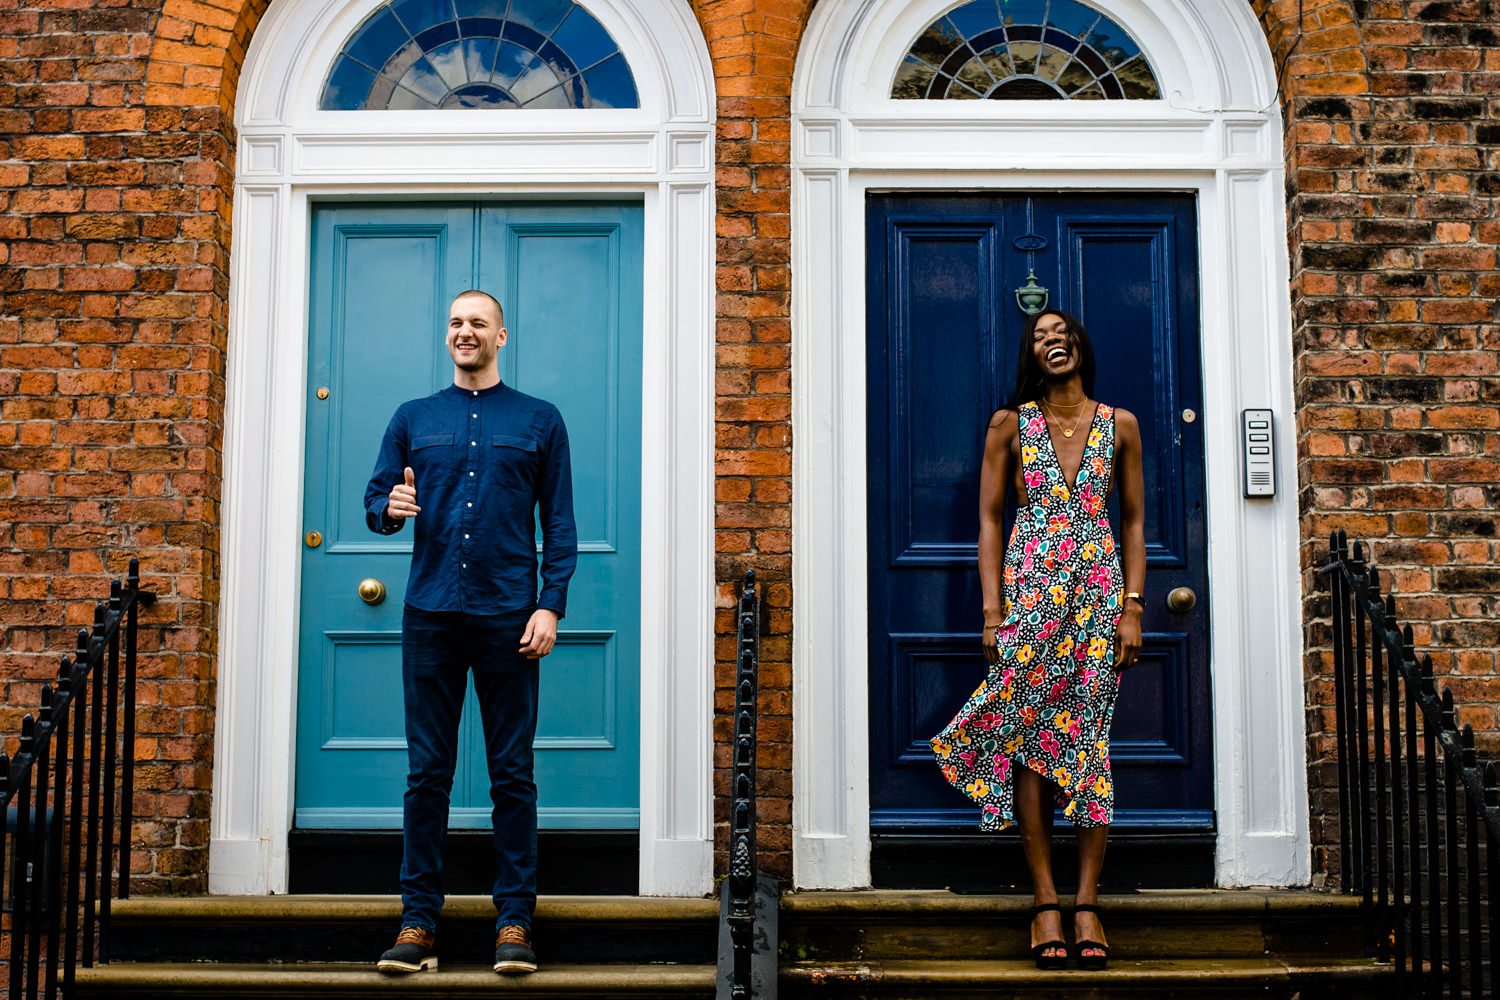 colourful-creative-pre-wedding-shoot-georgian-quarter-liverpool-11.jpg